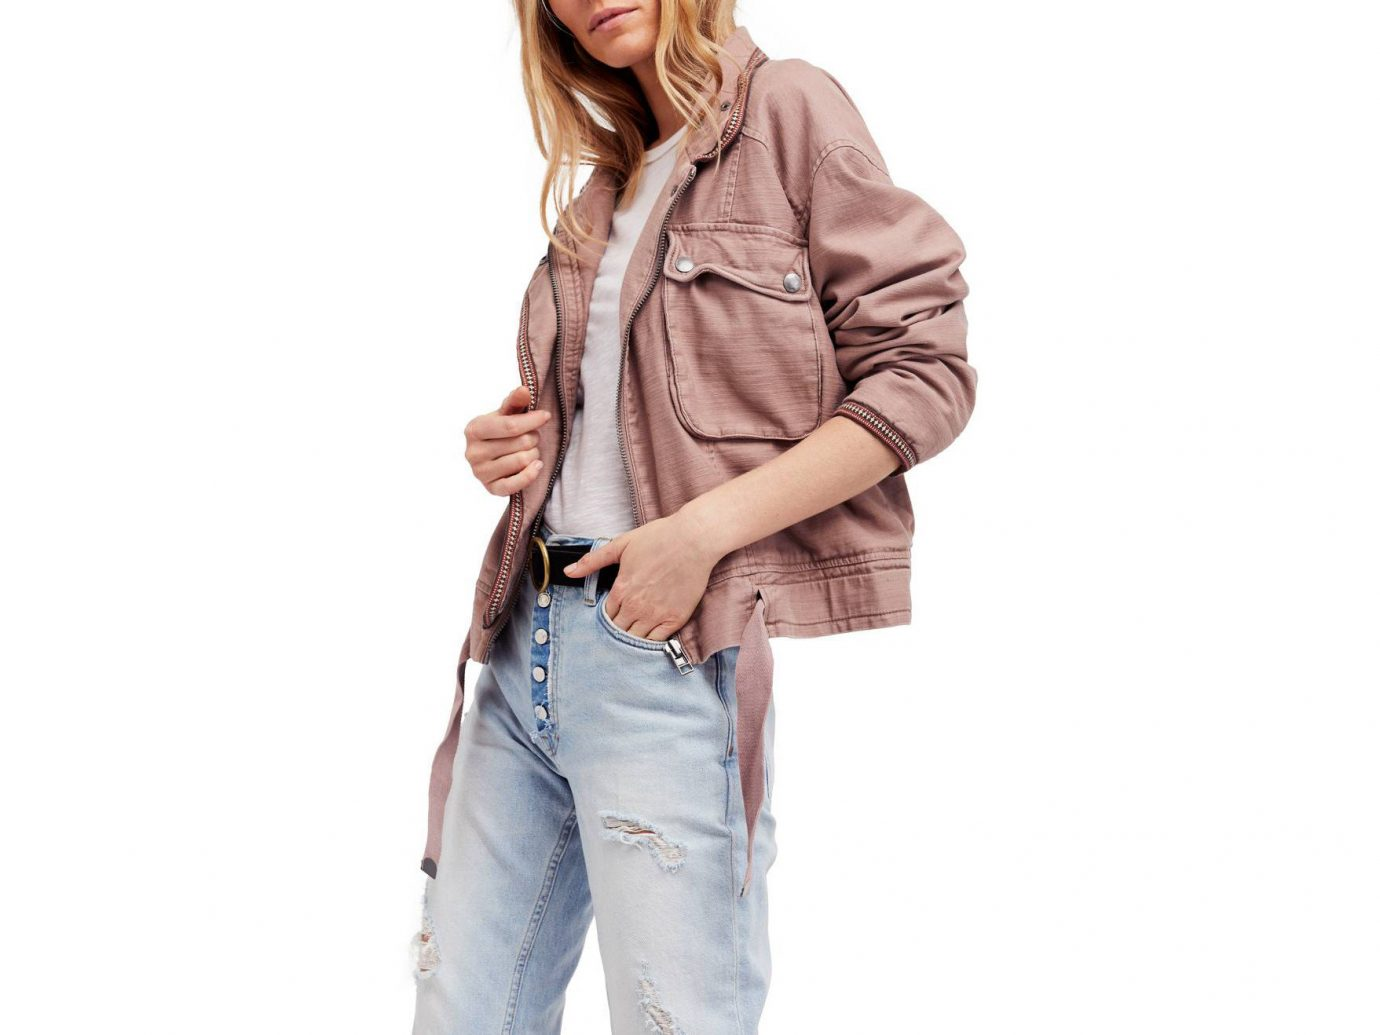 Packing Tips Spring Travel Style + Design Travel Shop person clothing shoulder jacket fashion model sleeve coat beige jeans neck pocket trouser